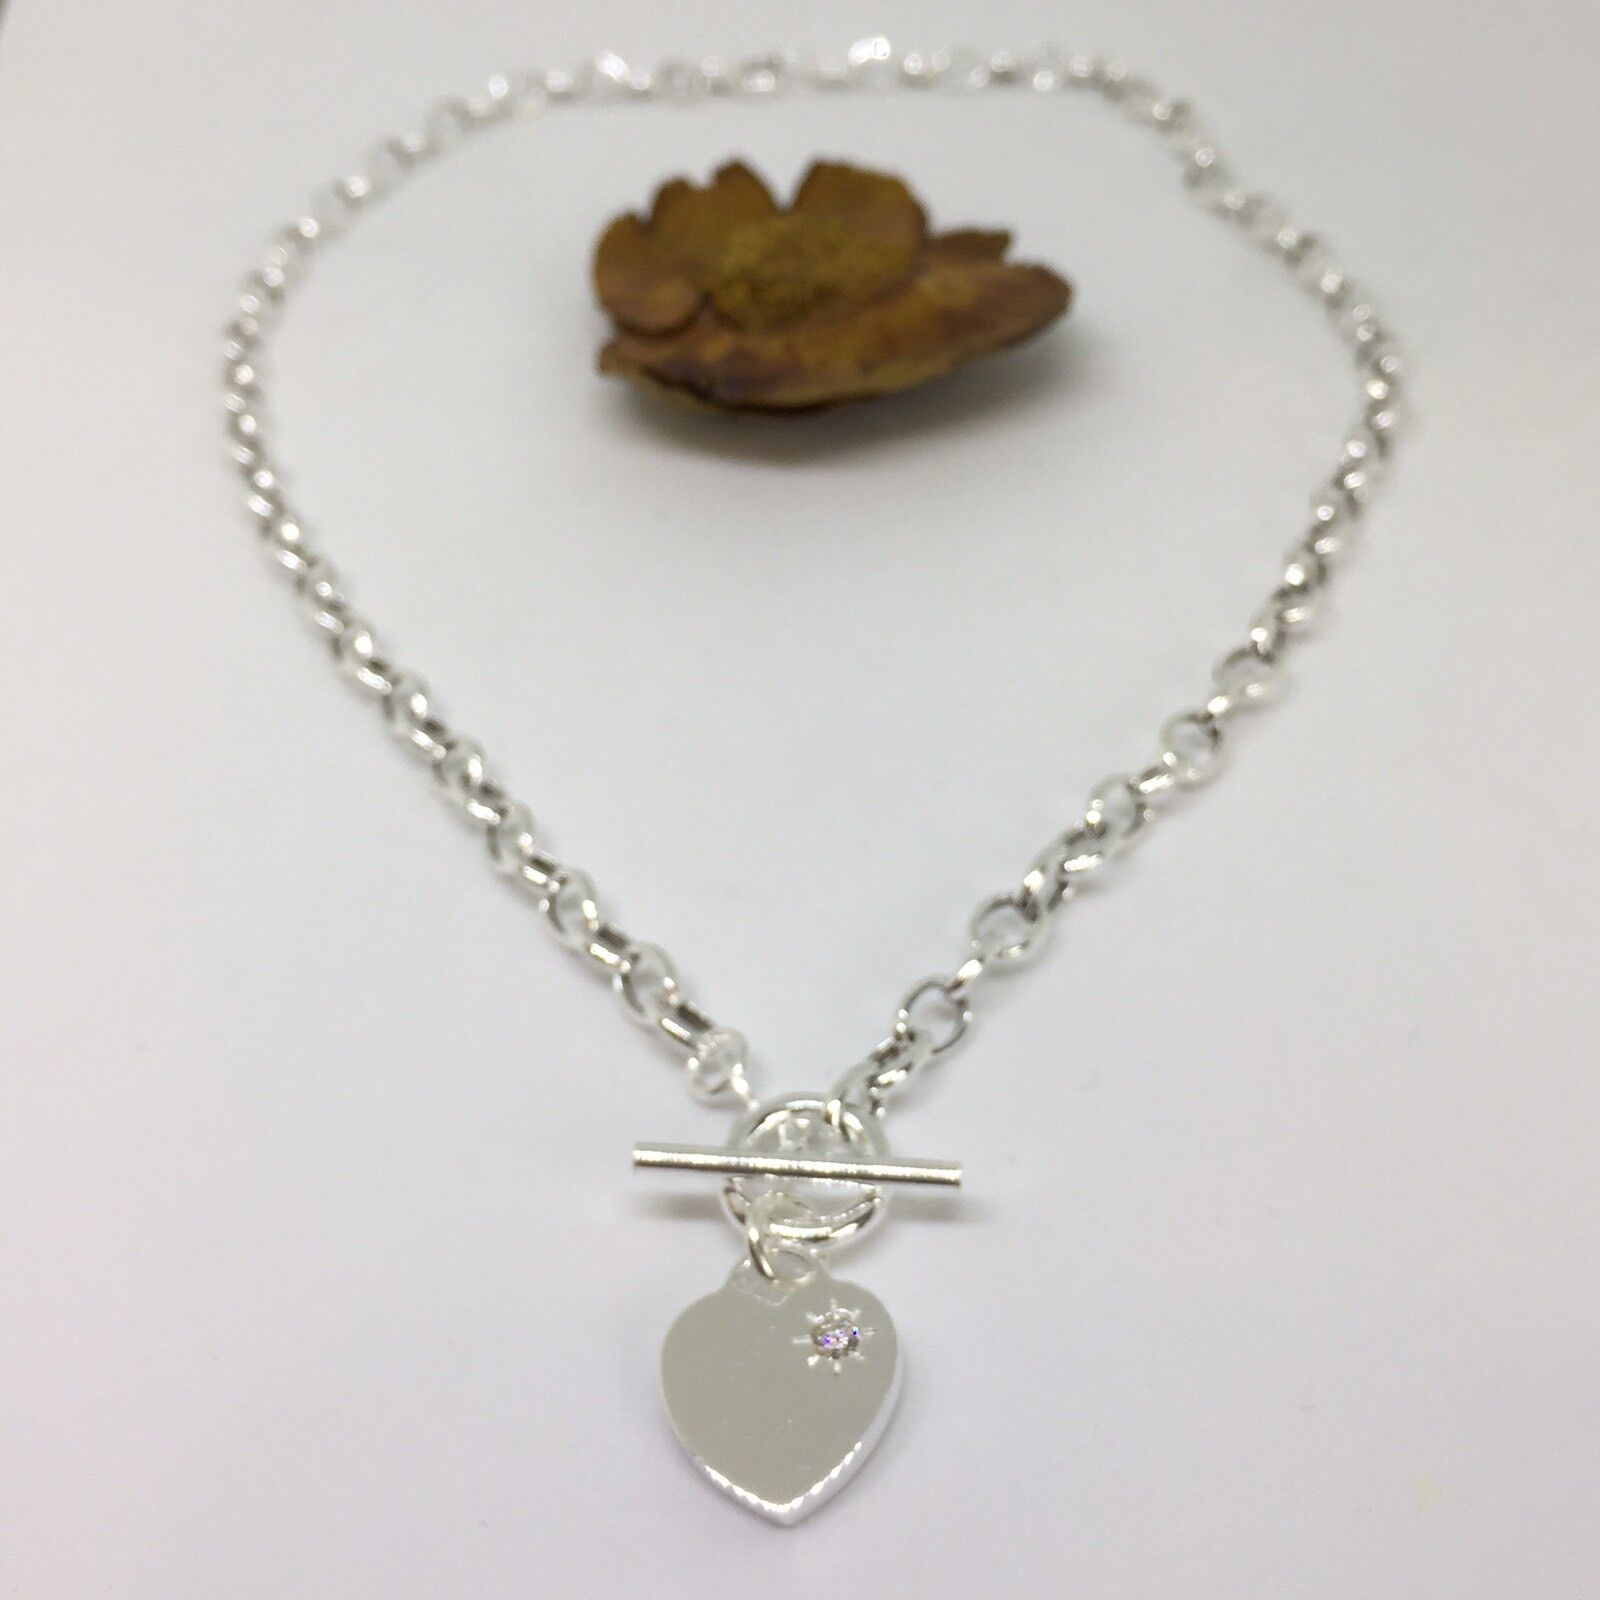 0cf4fda668d Details about Sterling Silver 925 Heart Charm T-Bar Necklace 16 inch with  The Heart 18 Inches